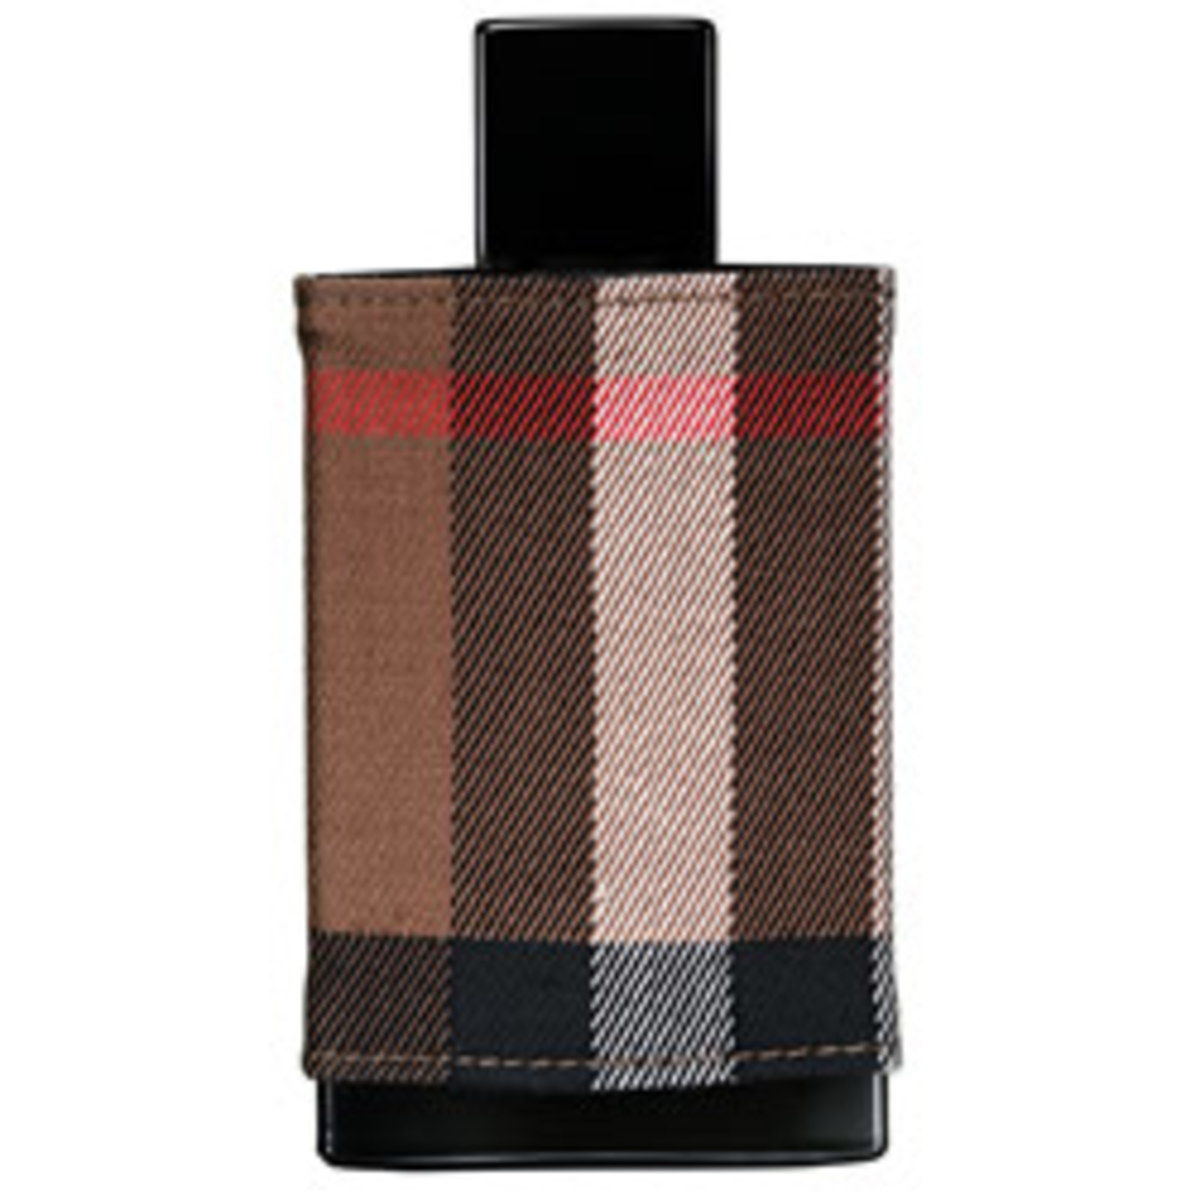 Burberry London Mens Cologne